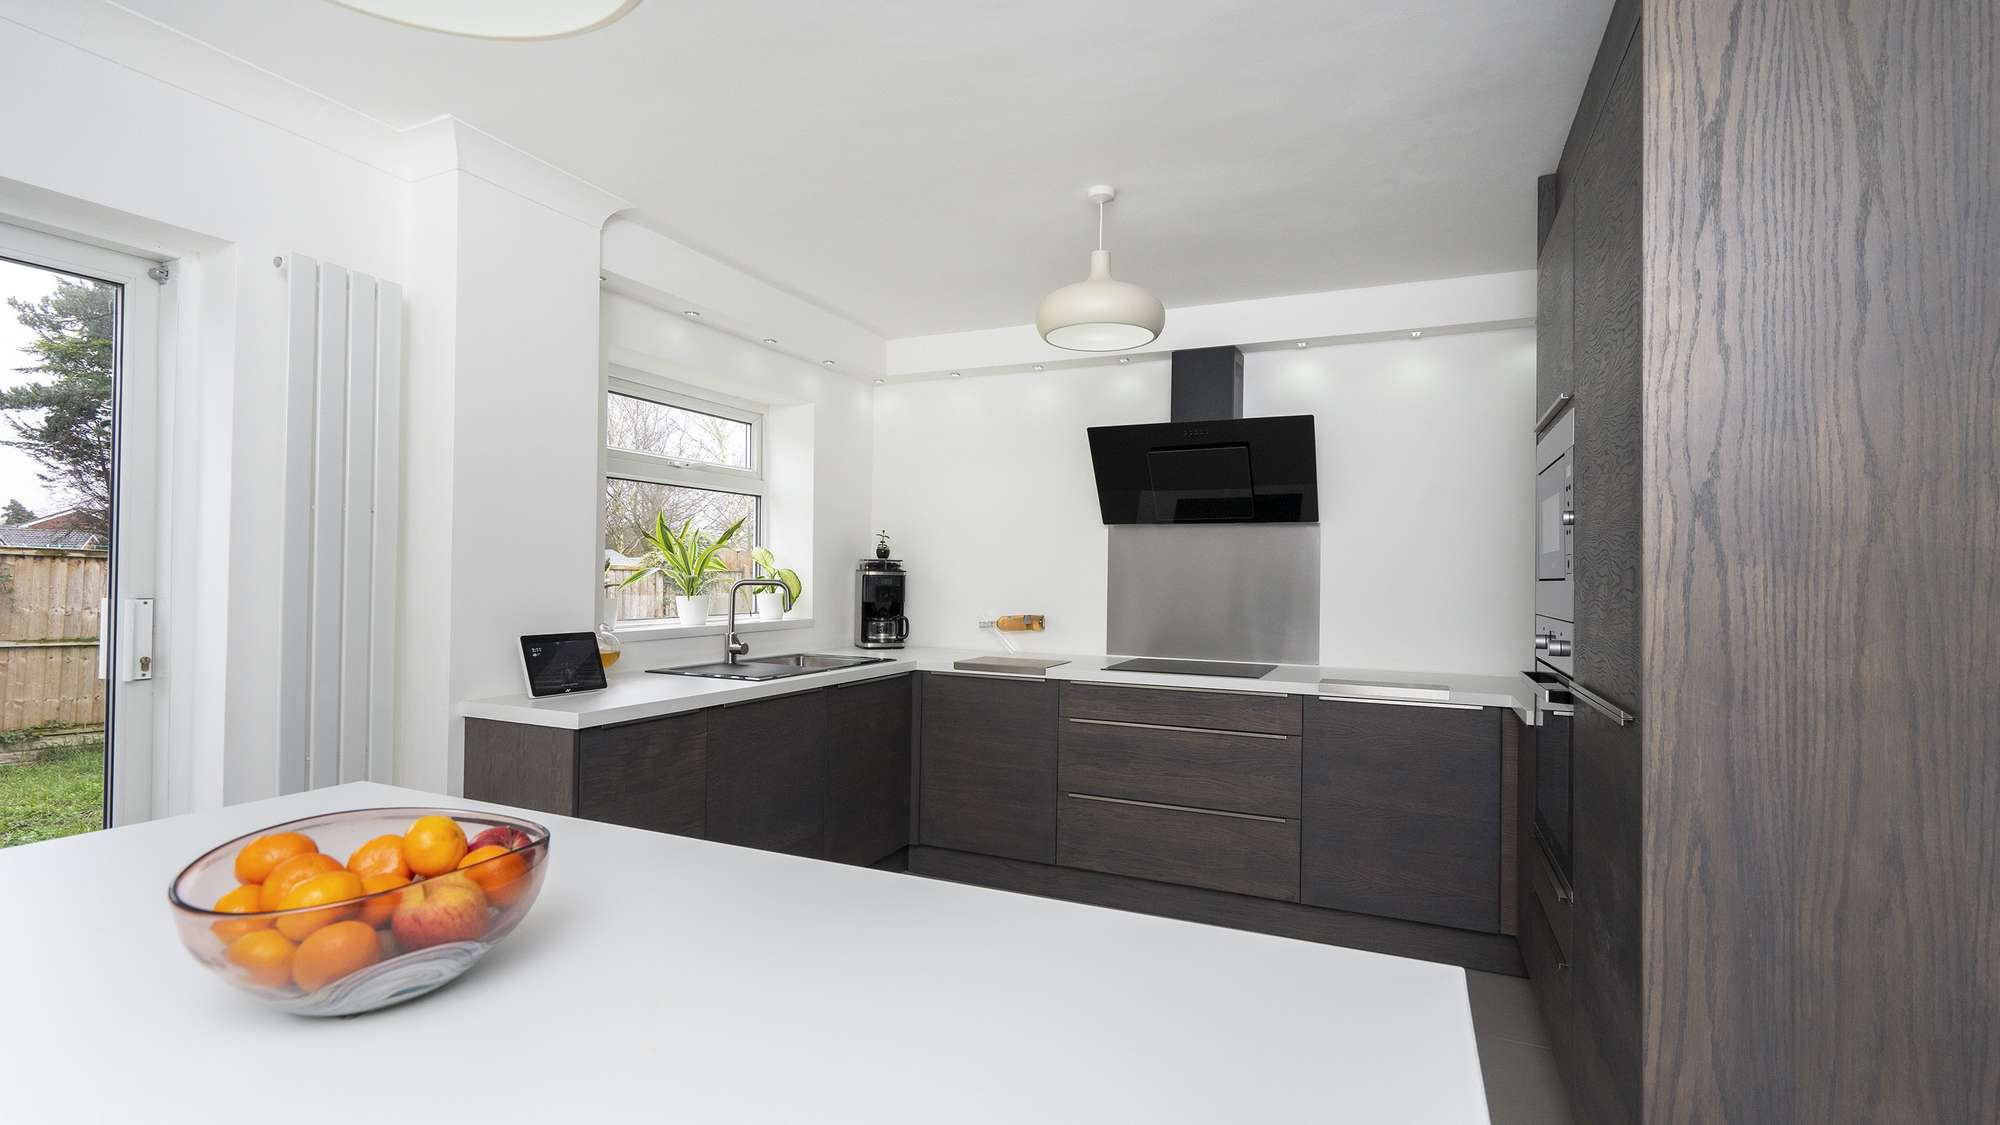 Alternative view of this modern walnut slab kitchen with white worktops and stainless steel accents.